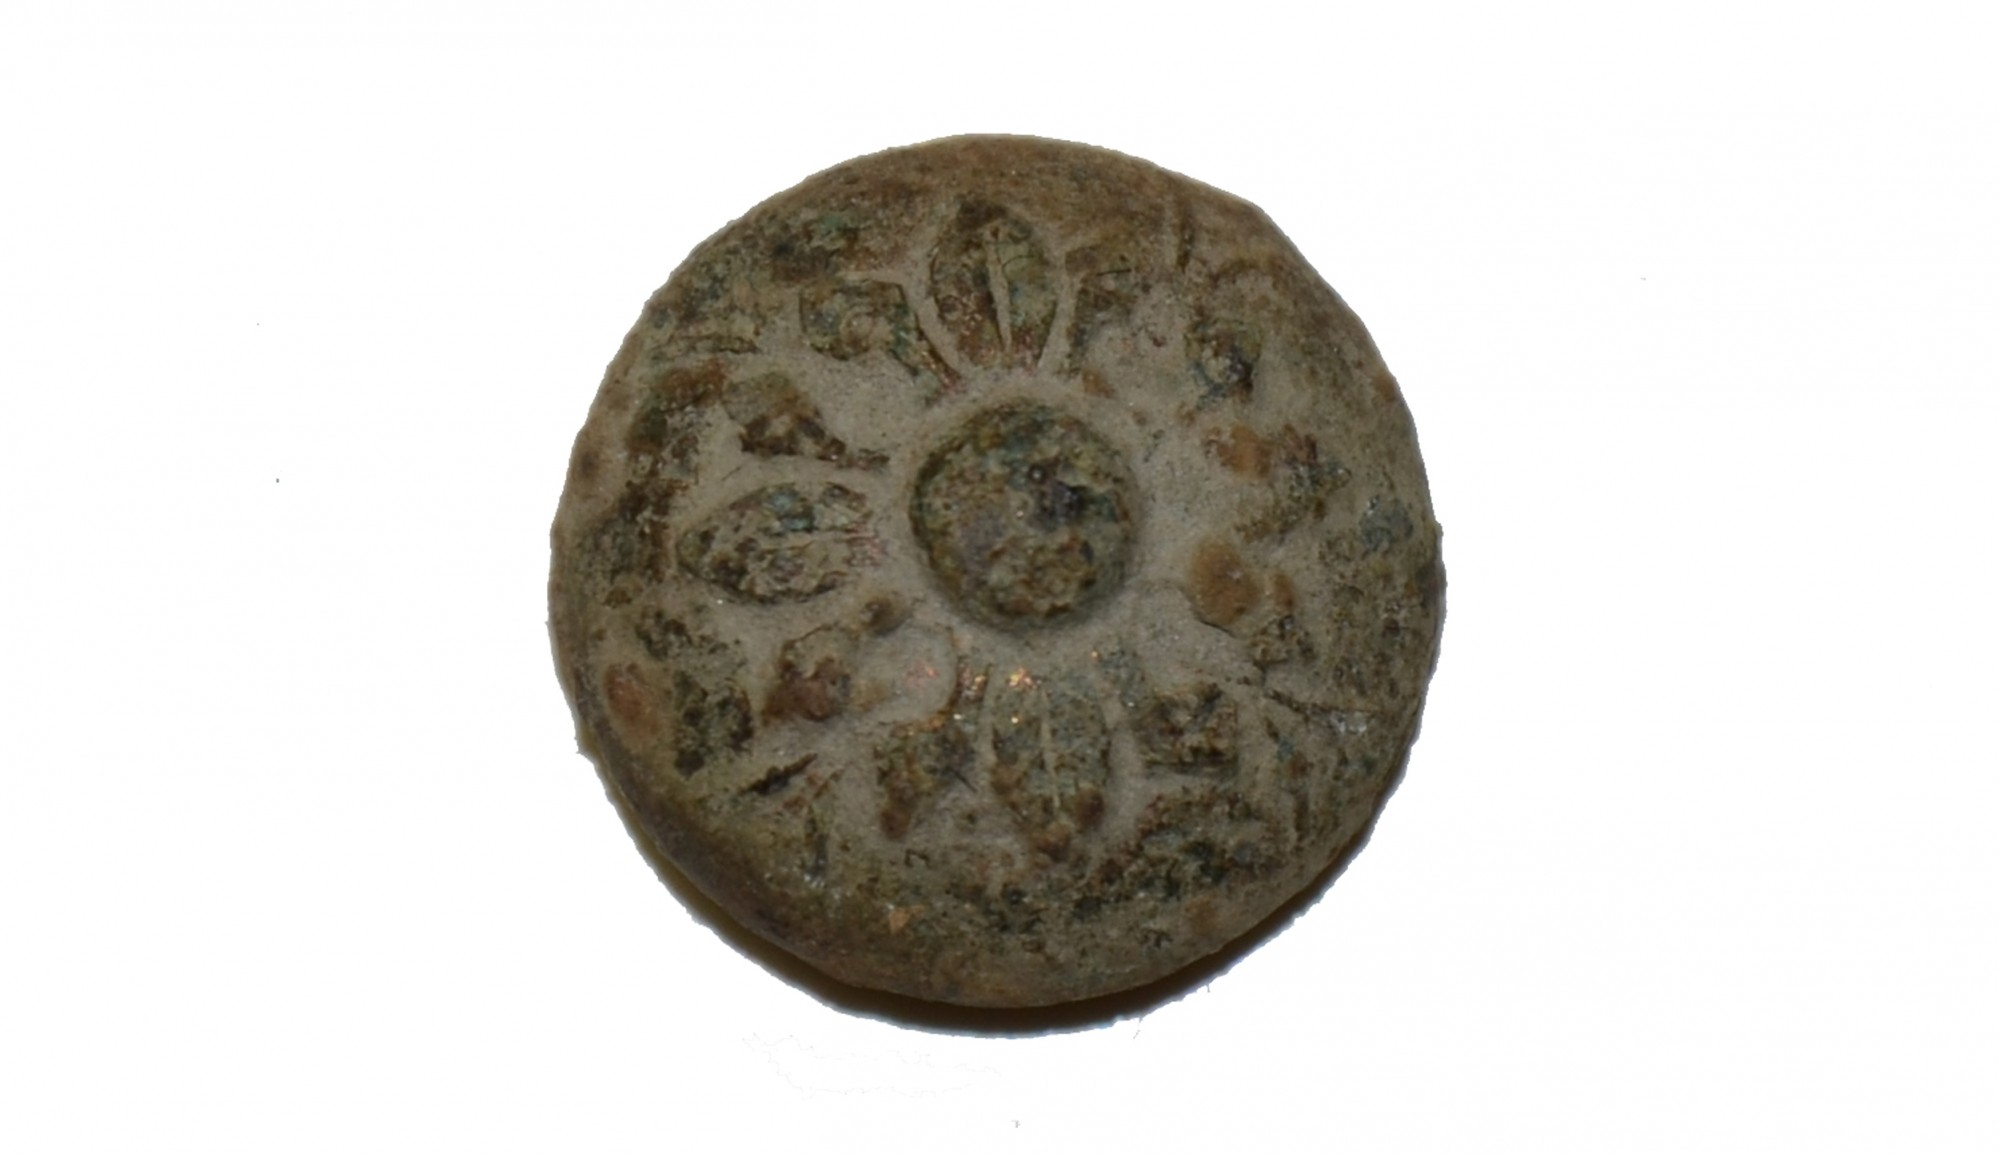 US/CS FLOWER DESIGN CUFF BUTTON RECOVERED NEAR CULP'S HILL